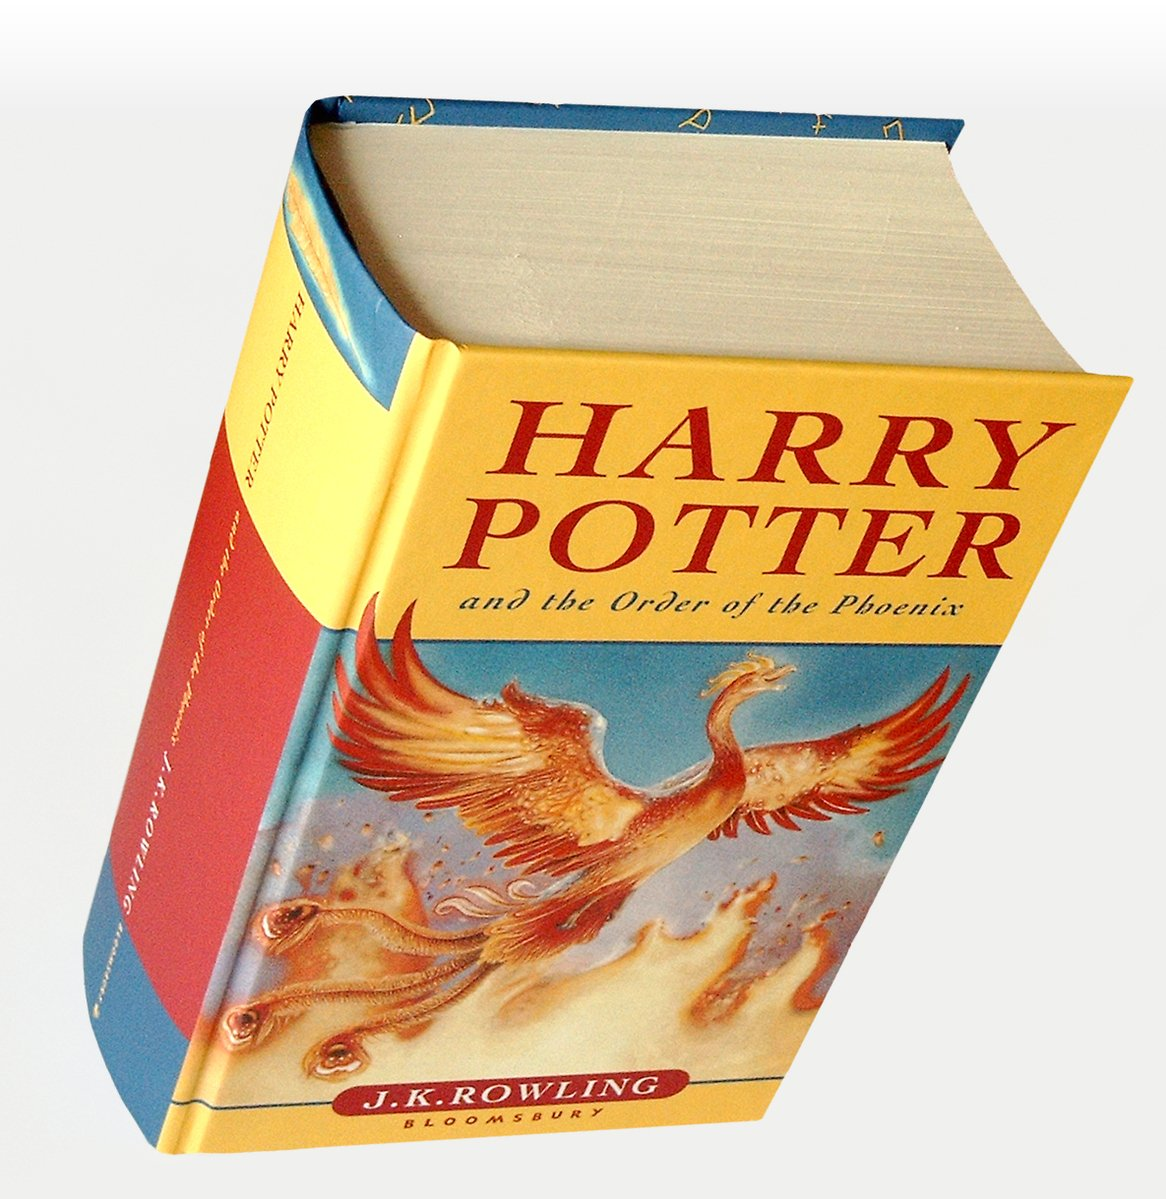 Harry Potter Book Free : Free harry potter book stock photo freeimages